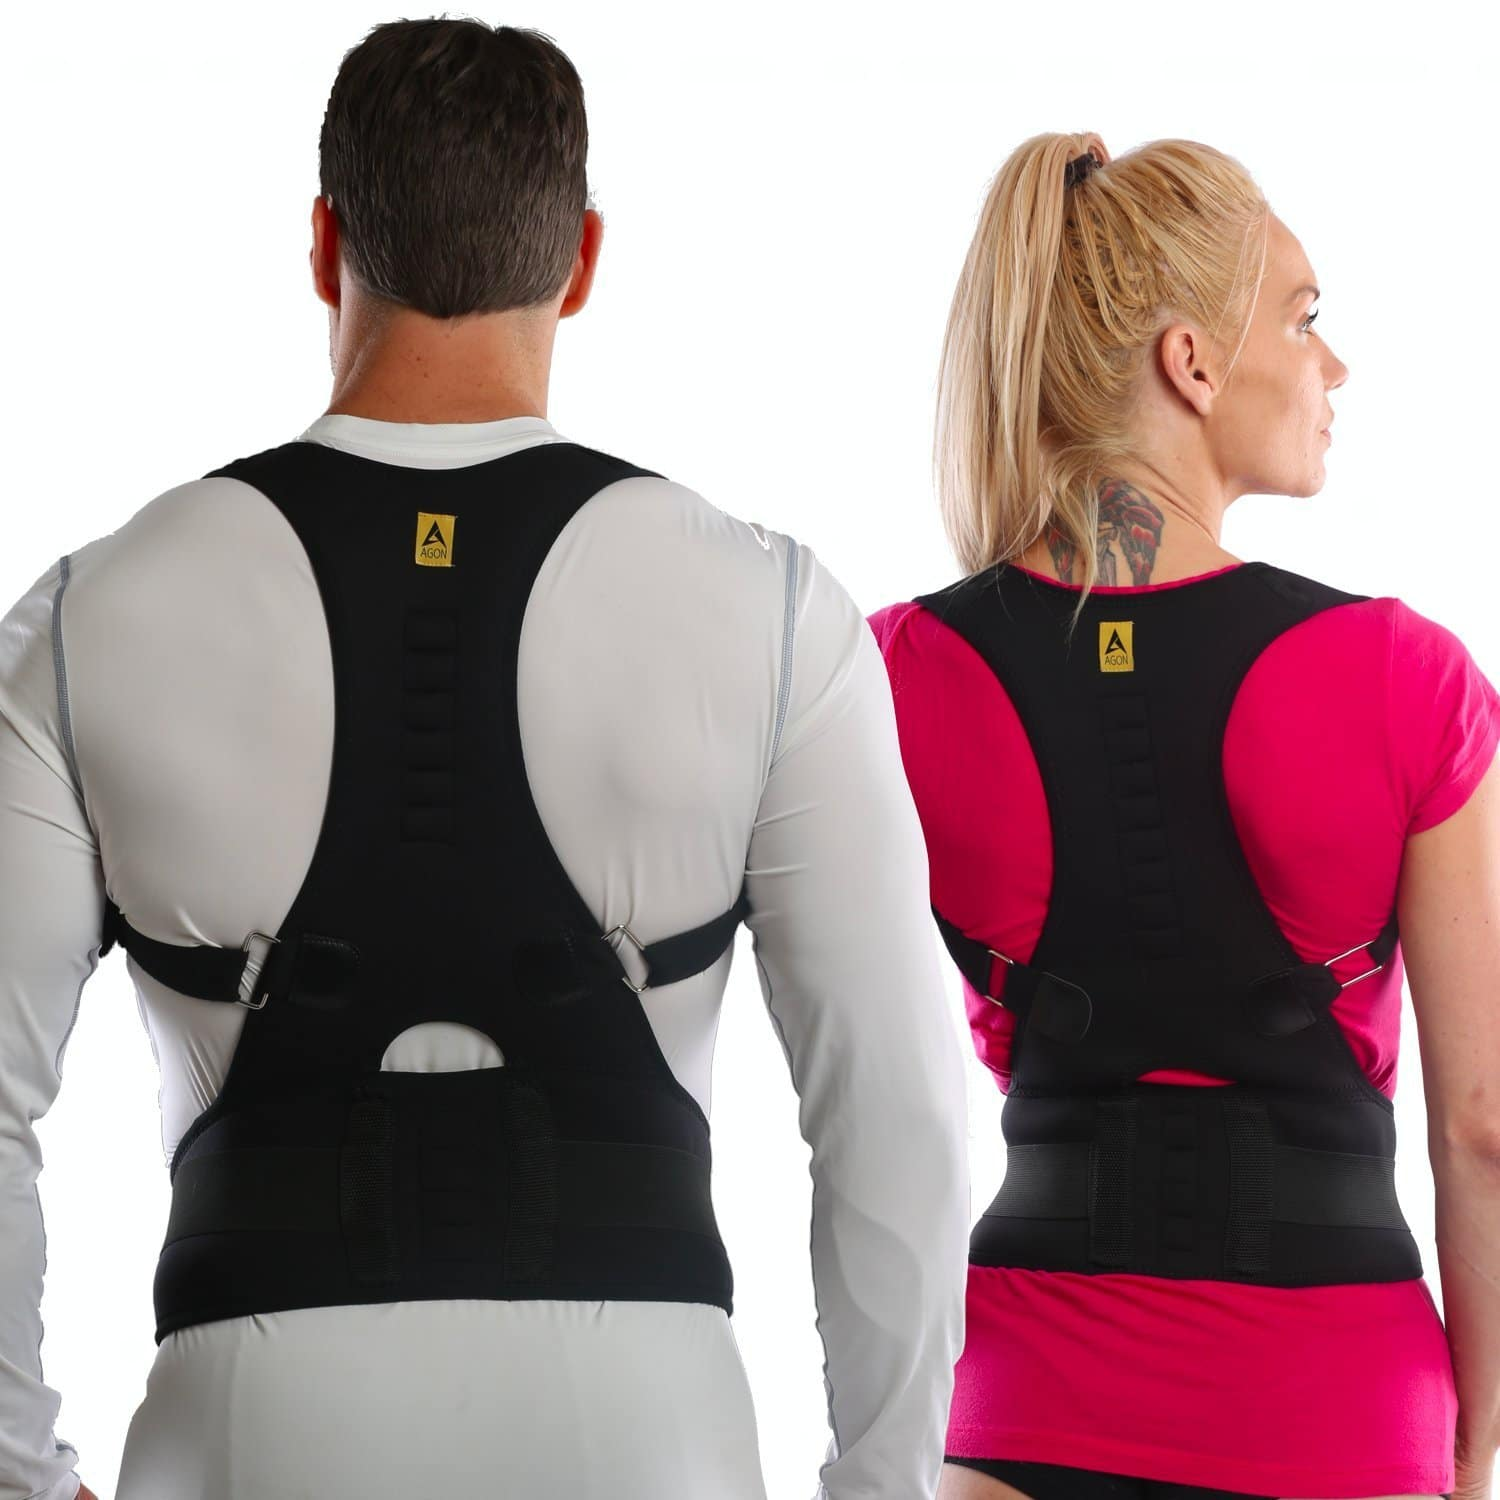 back posture brace Back Posture Brace | Cervical, Clavicle, Shoulder, Neck \u0026 Waist Support